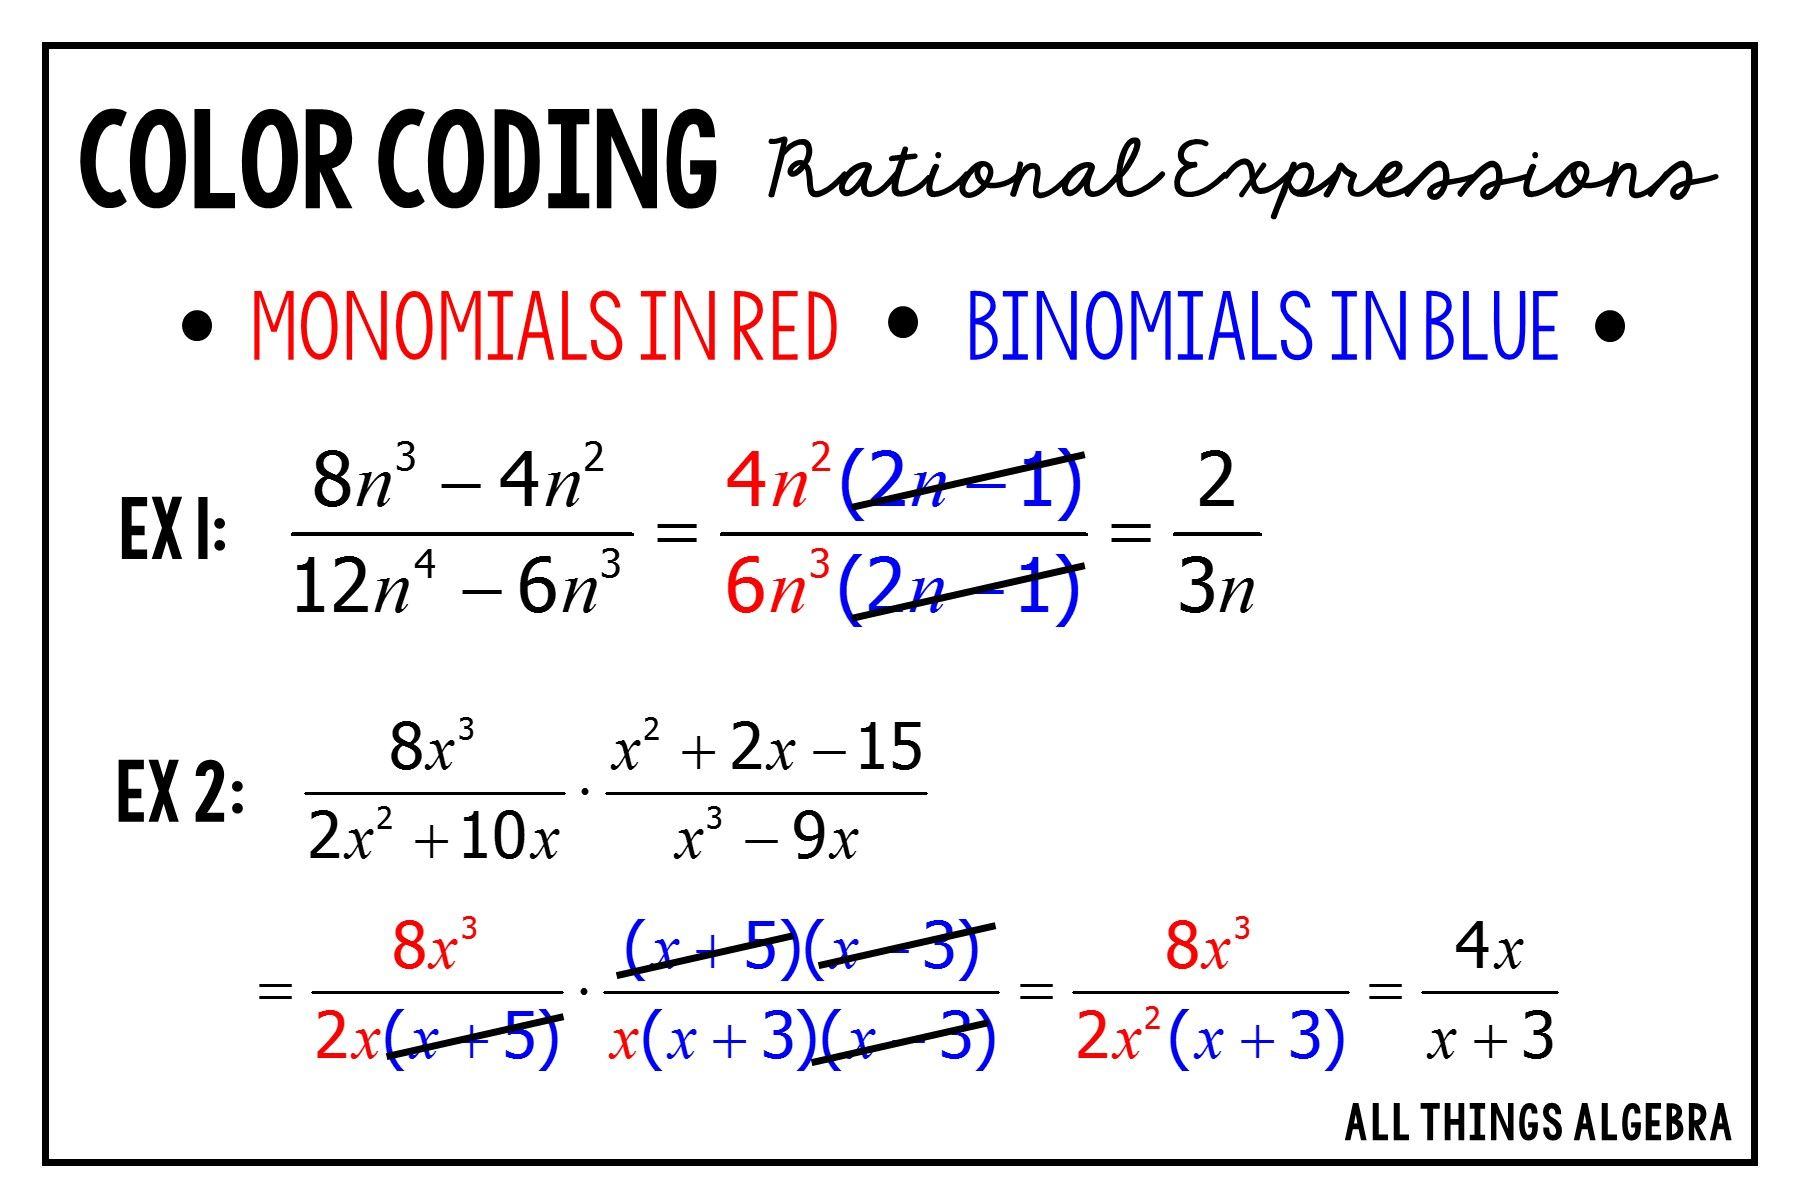 Color Coding With Rational Expressions With Images